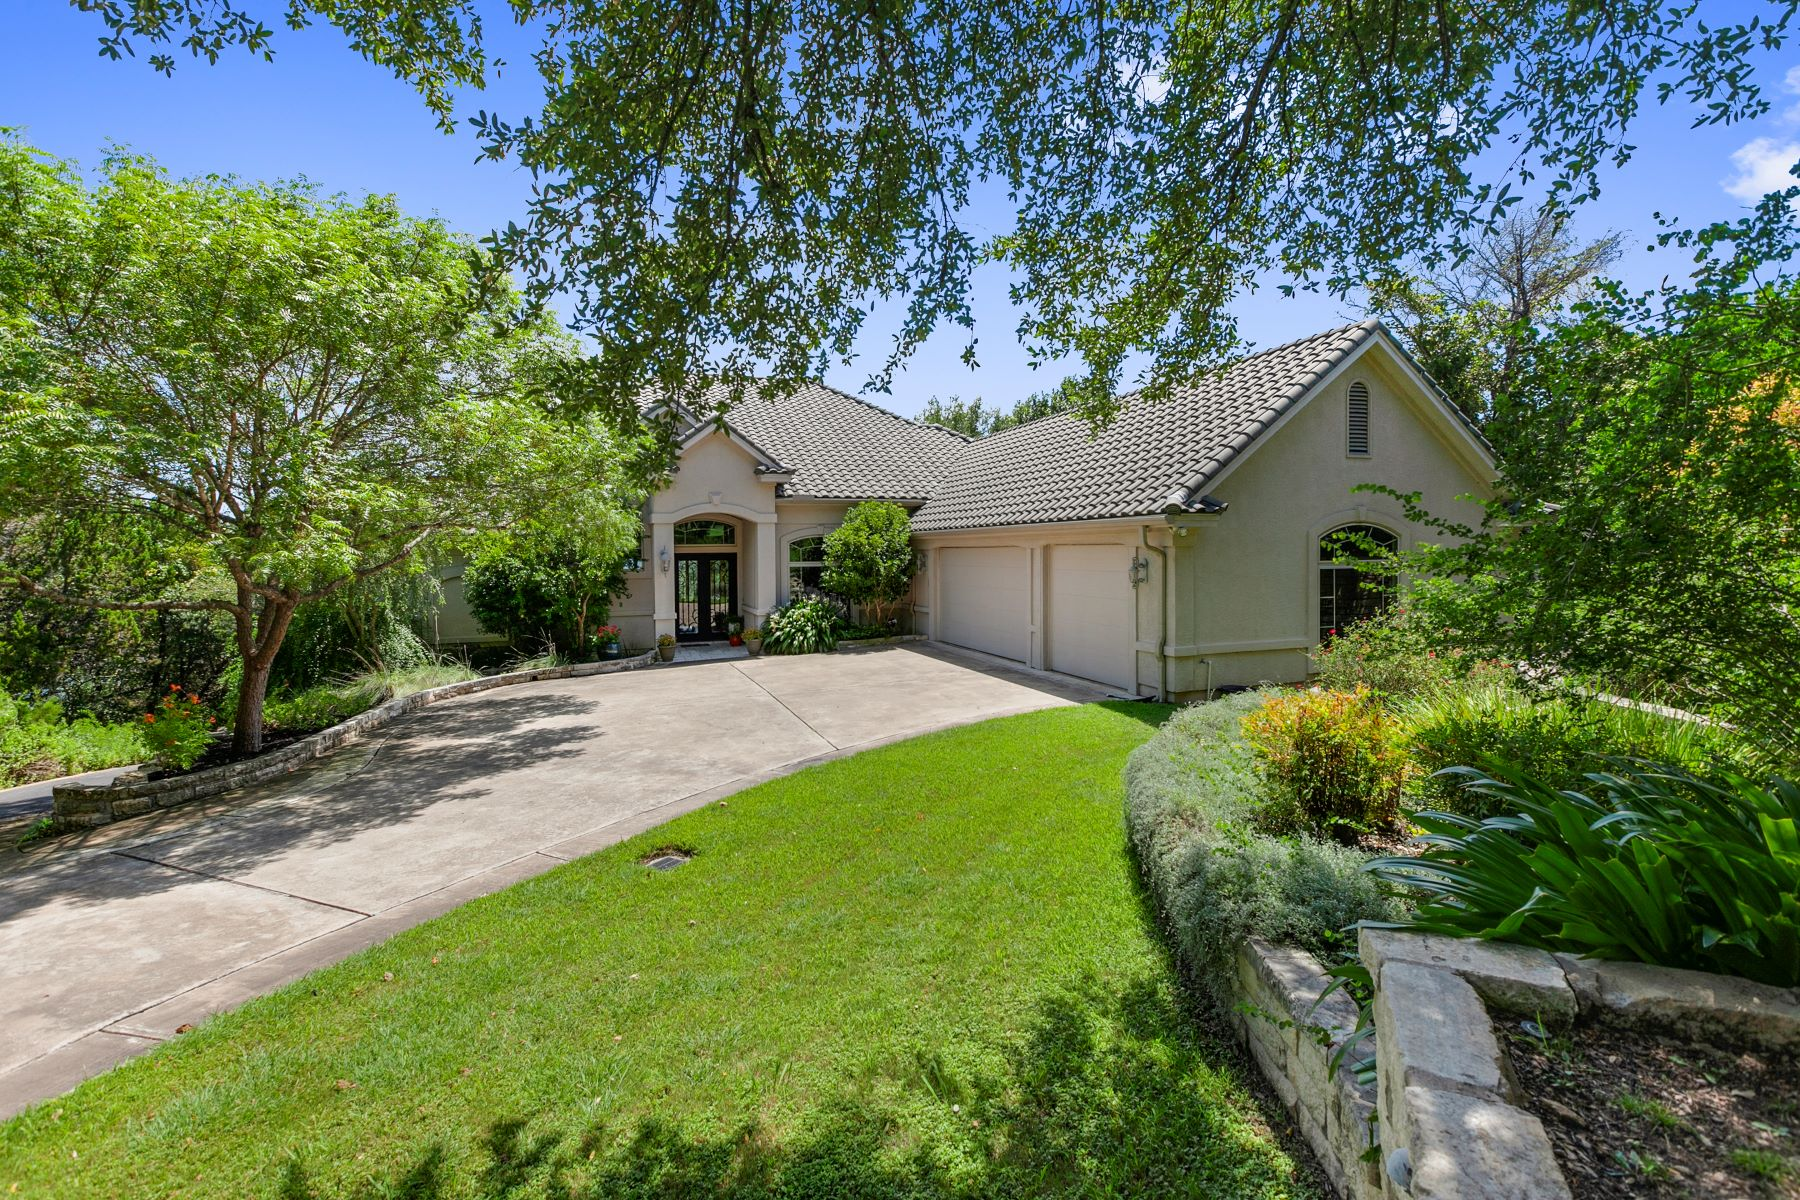 Single Family Homes for Sale at 8917 Northlake Hills Circle, Jonestown, TX 78645 8917 Northlake Hills Circle Jonestown, Texas 78645 United States